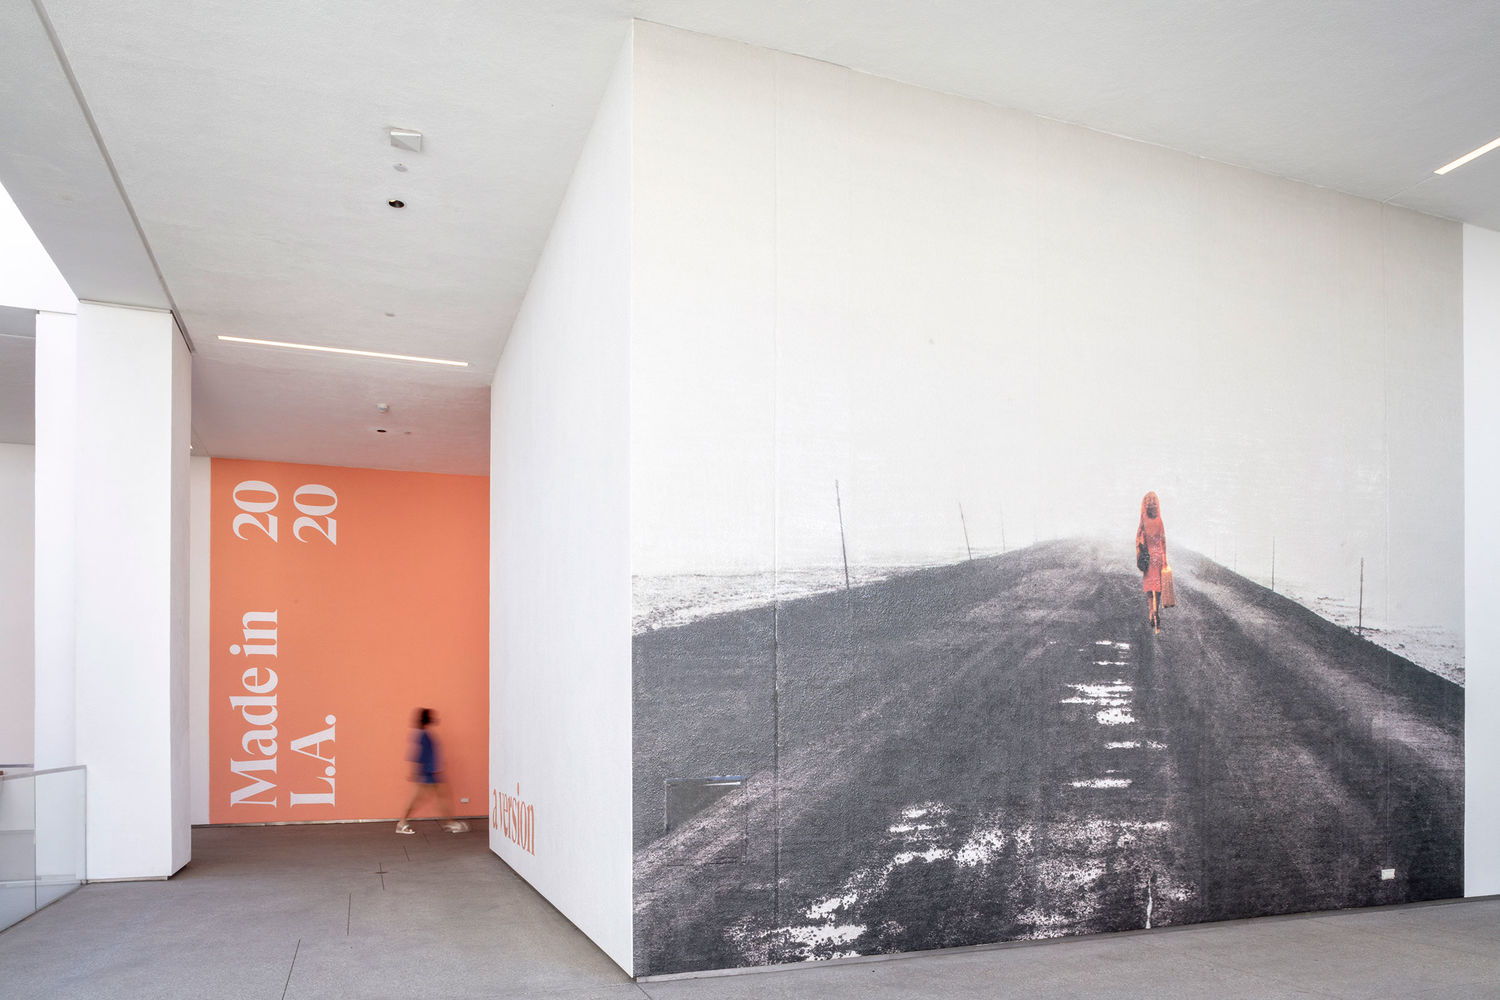 A hallway at the Hammer Museum, with a black-and-white photograph covering a whole wall, and a pink wall with Made in L.A. 2020 on it in the background